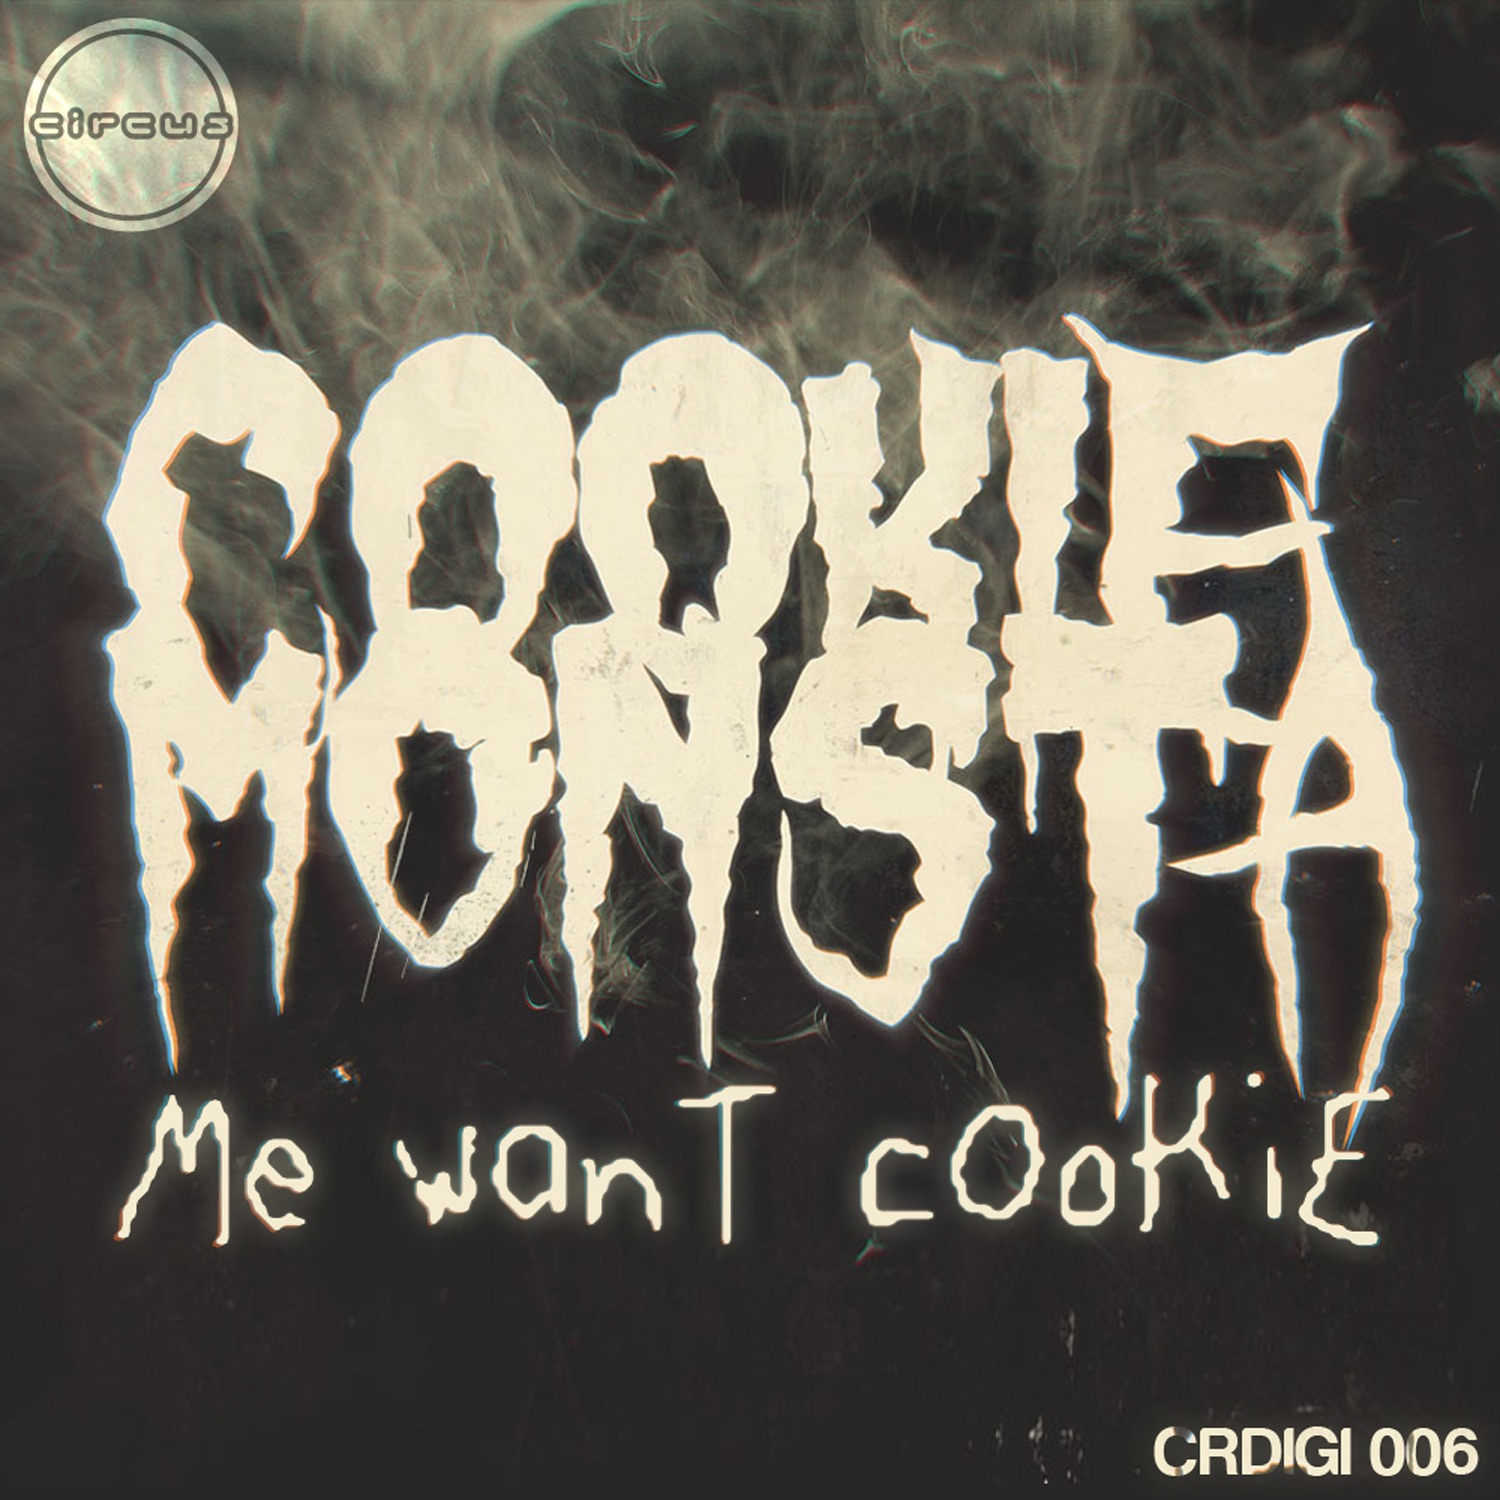 Me Want Cookie - EP